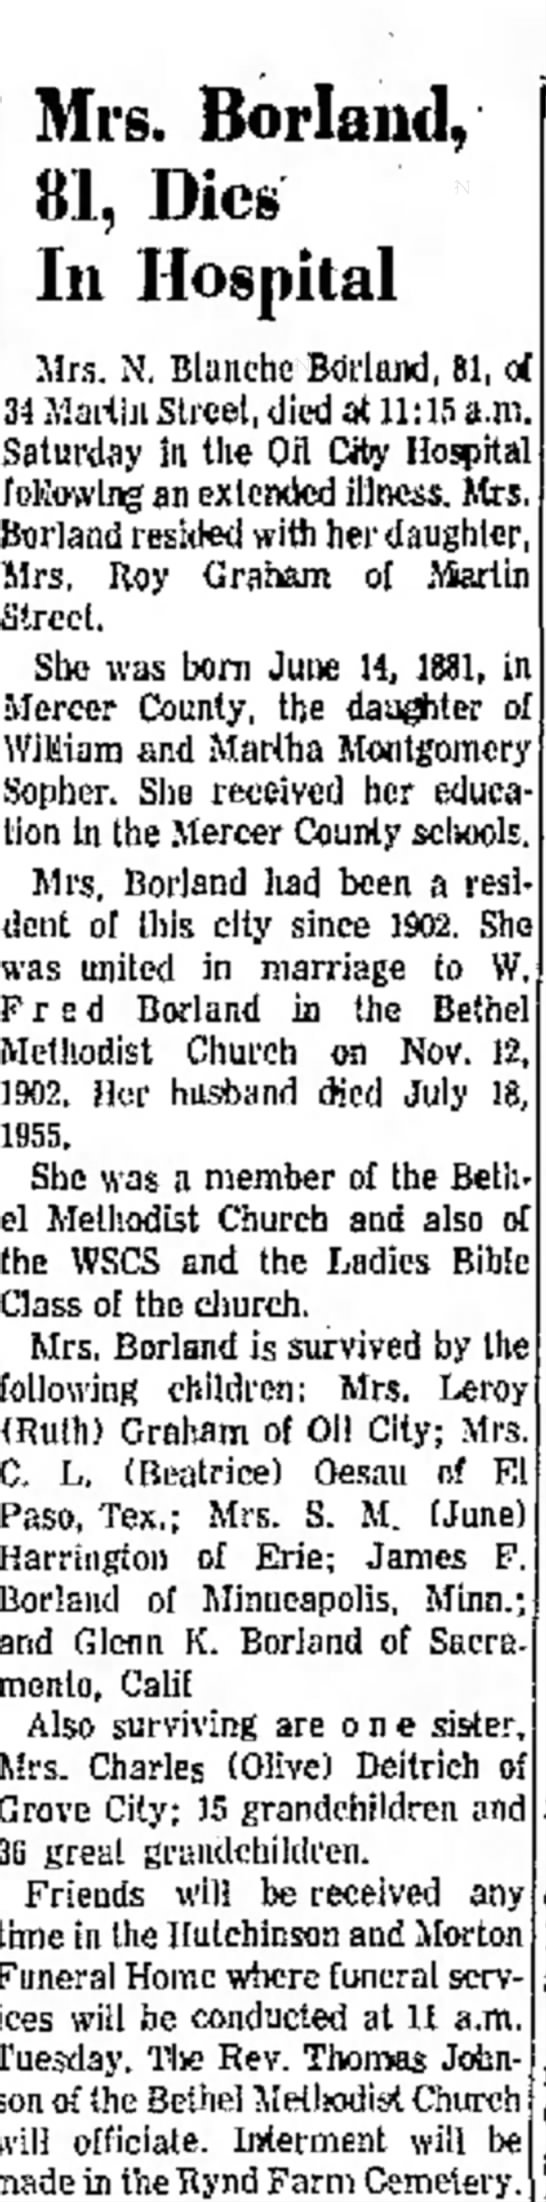 Nora Blanch sopher Borland Obit March 1963